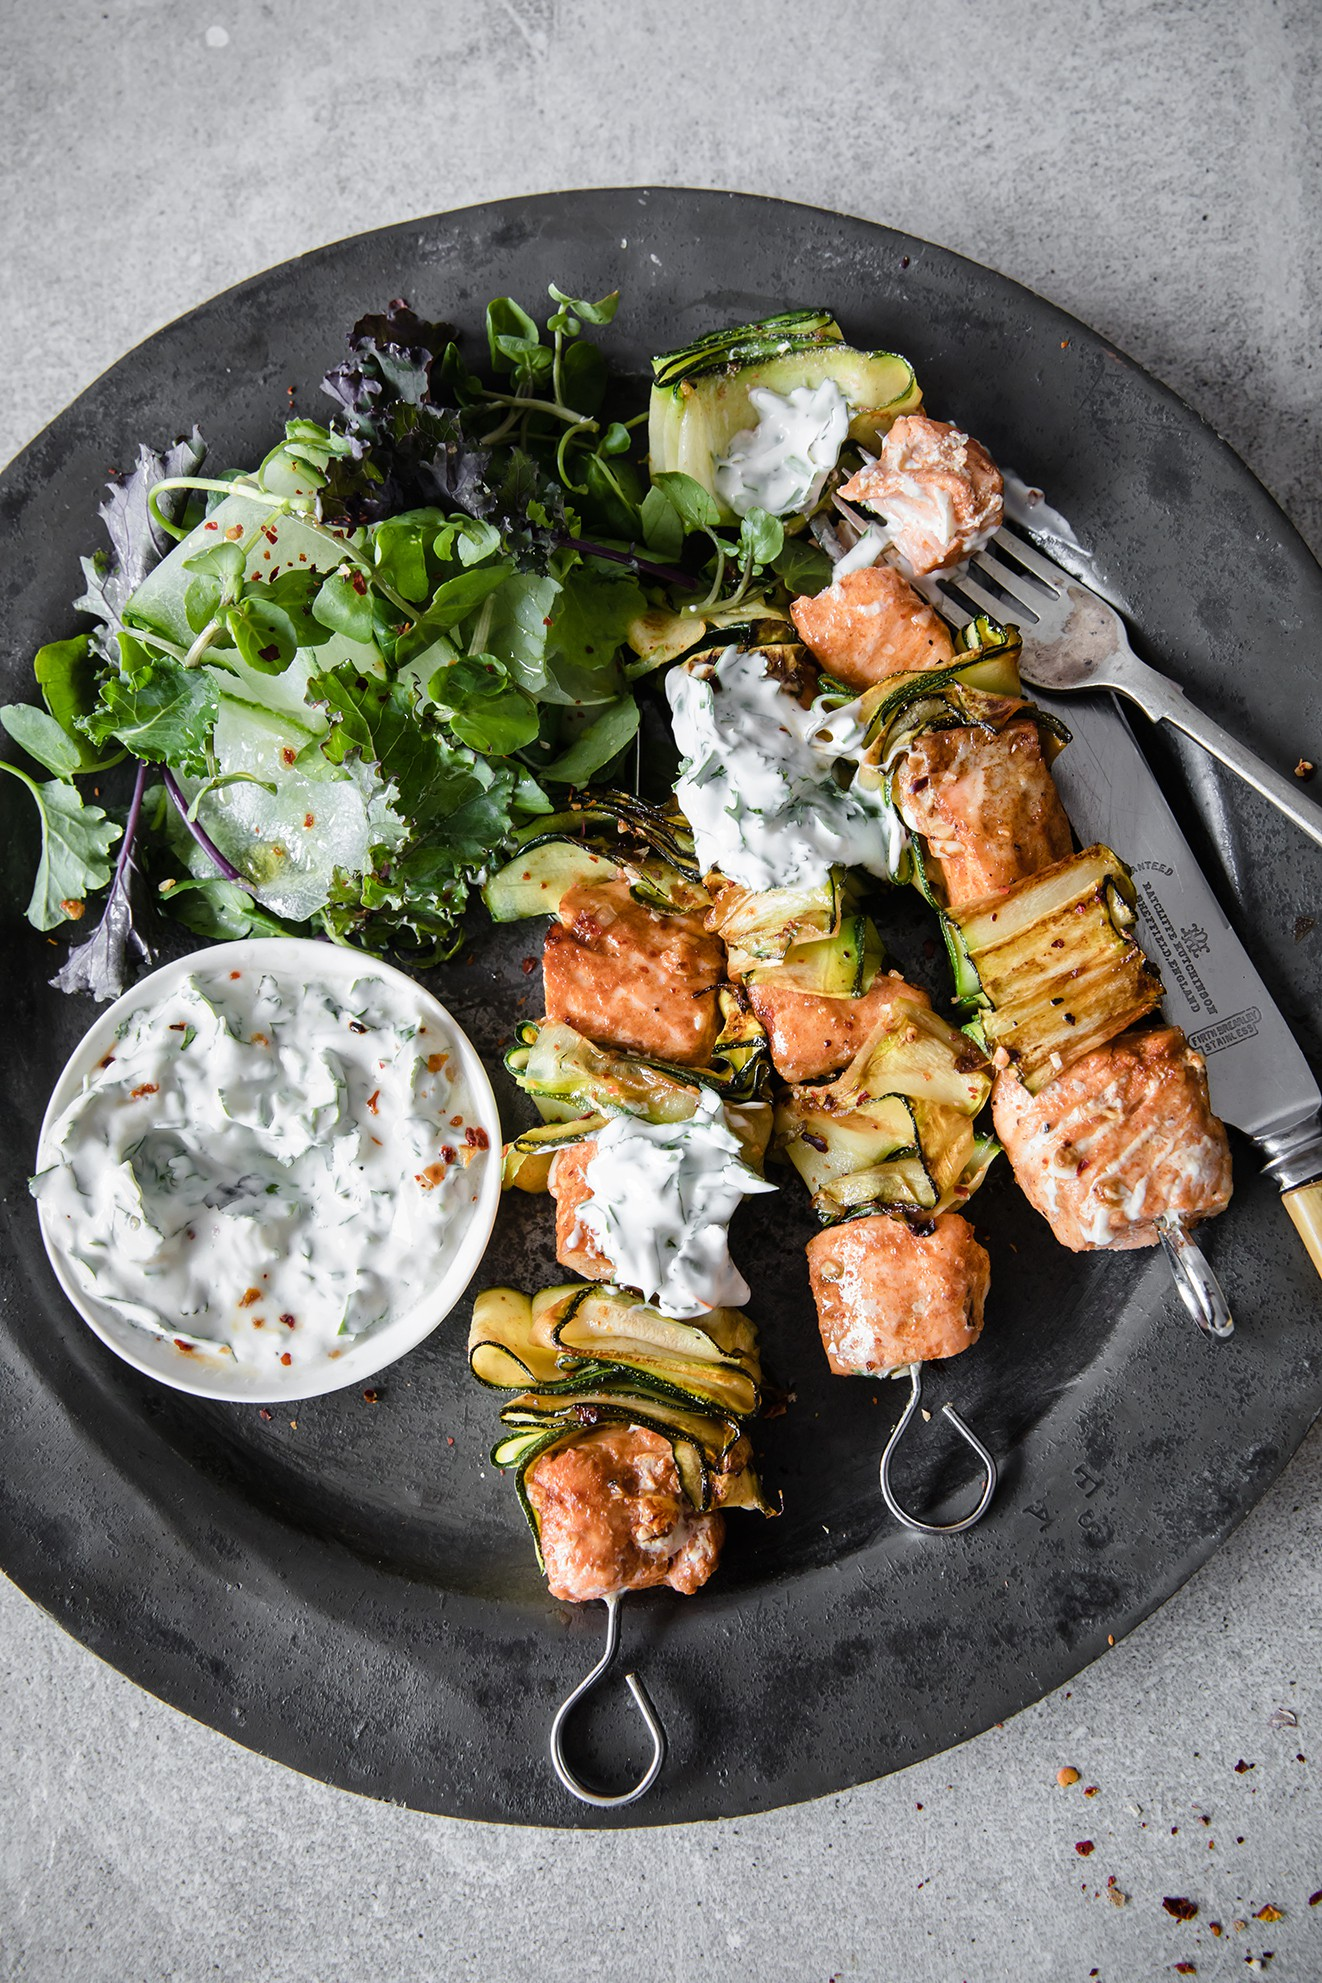 Paprika-Lime-Salmon-Kebabs-With-Herby-Coconut-Yohgurt-1.jpg